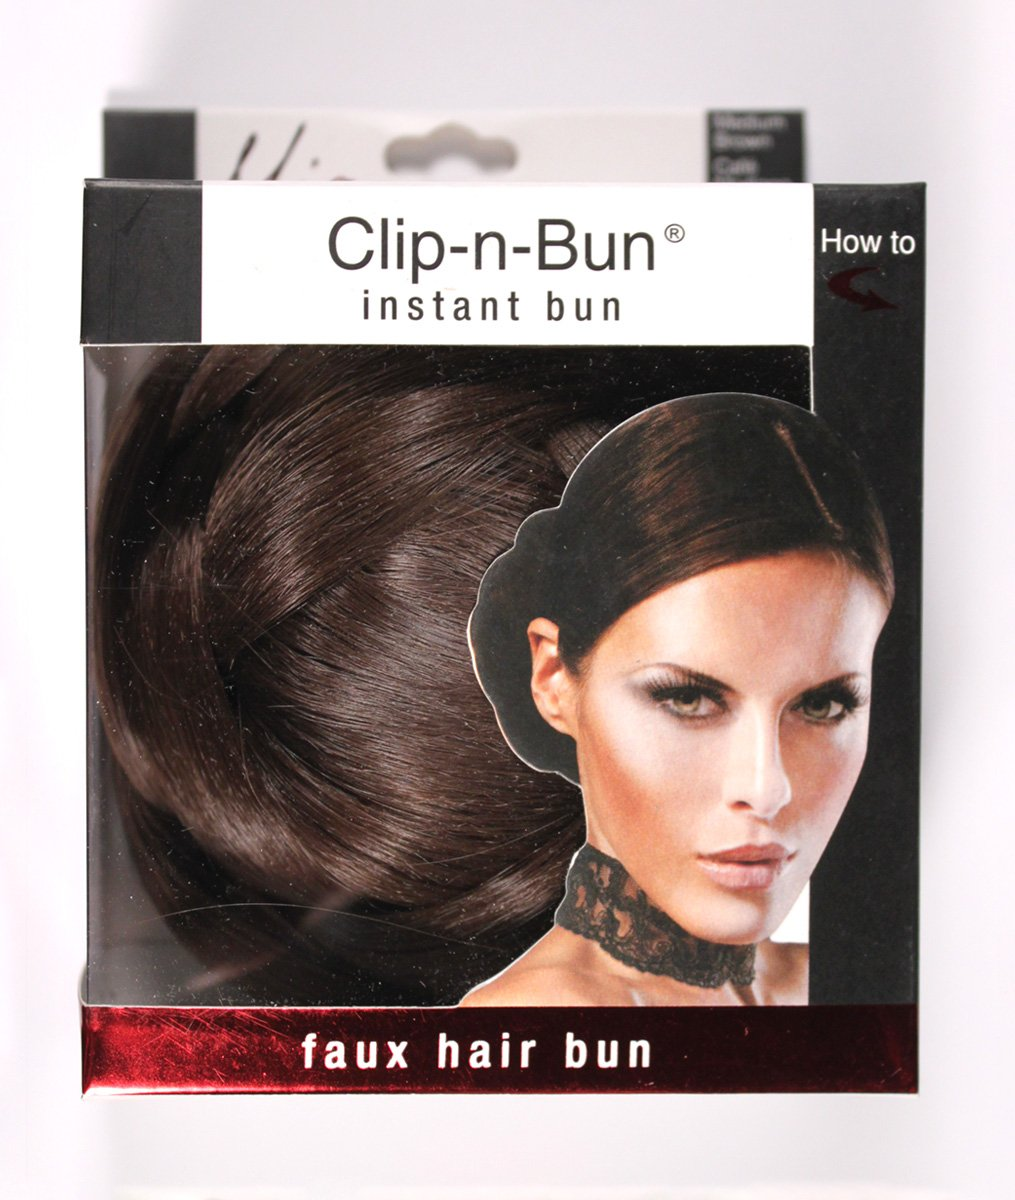 Mia Clip-n-Bun-Instant Bun That Clips On! Made of Synthetic/Faux Wig Hair-Medium Brown Color-Measures 5'' Diameter x 2.5'' Deep (1 piece per package)